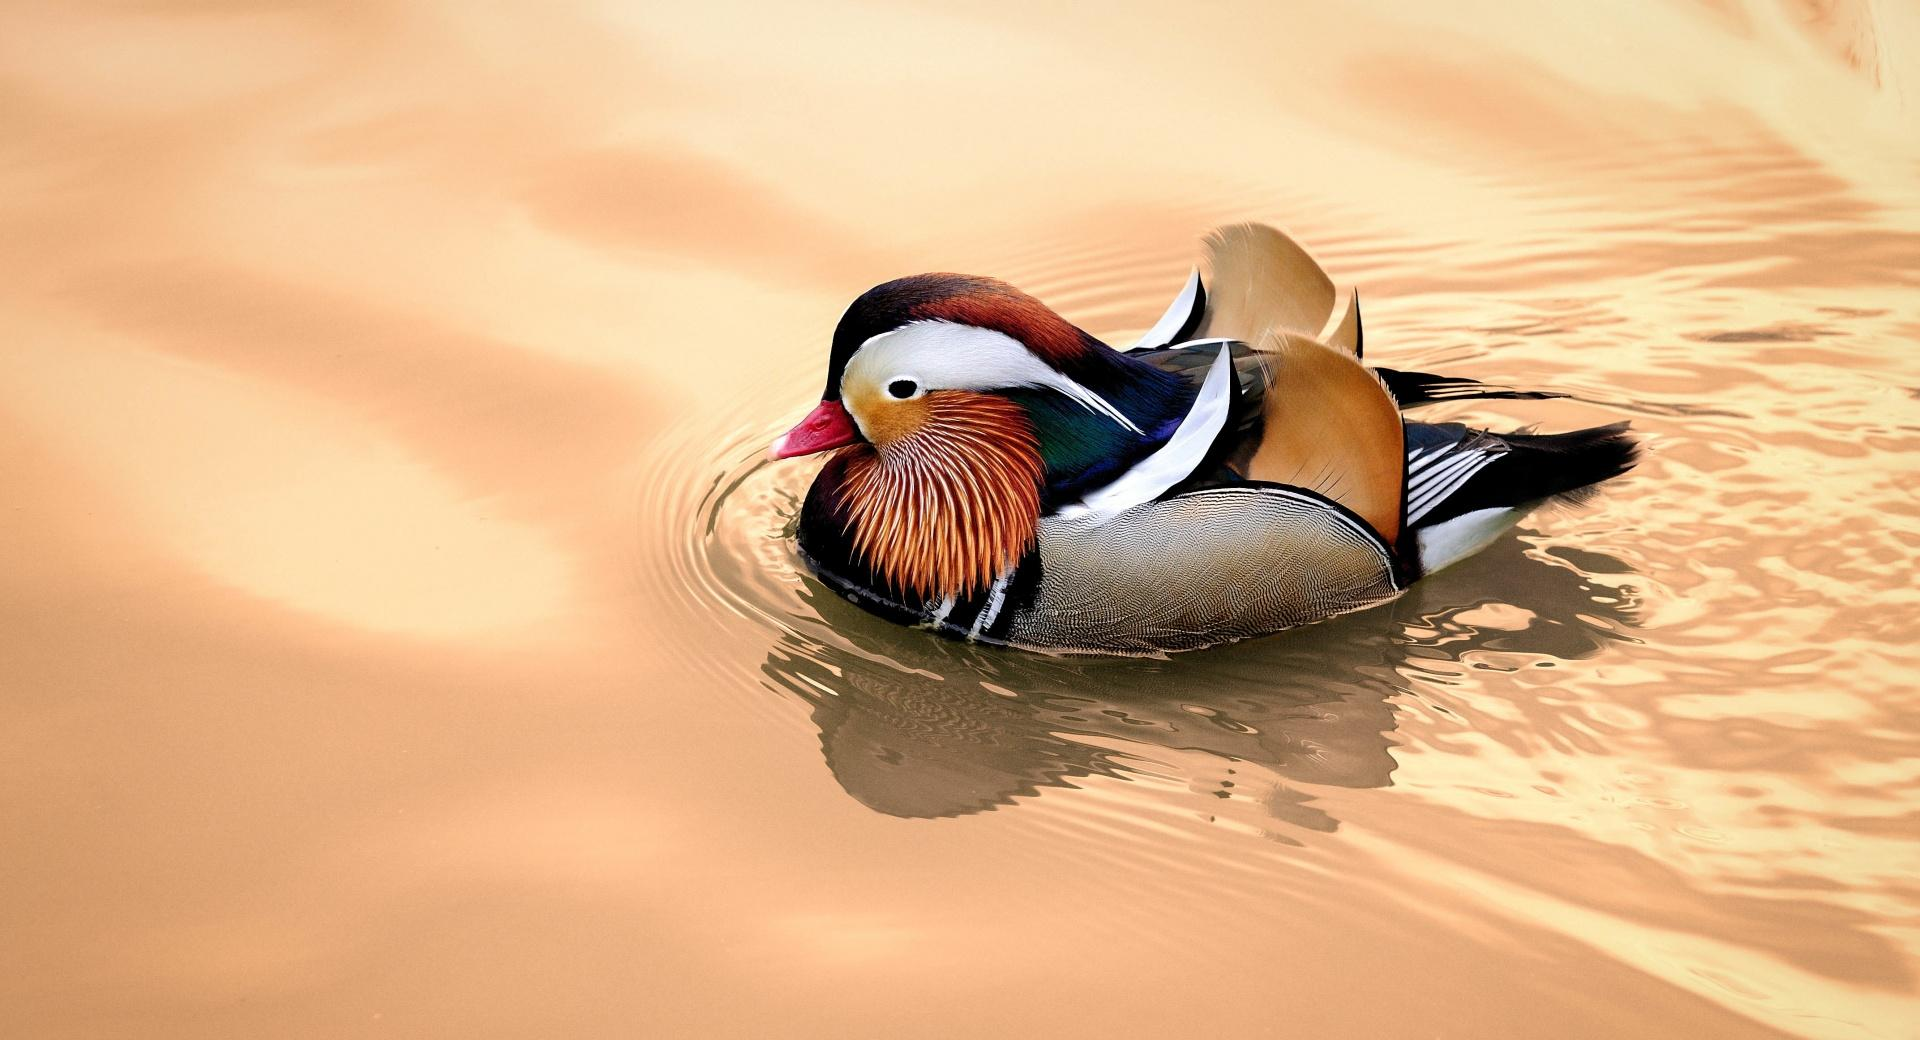 Mandarin Duck Male at 1334 x 750 iPhone 7 size wallpapers HD quality